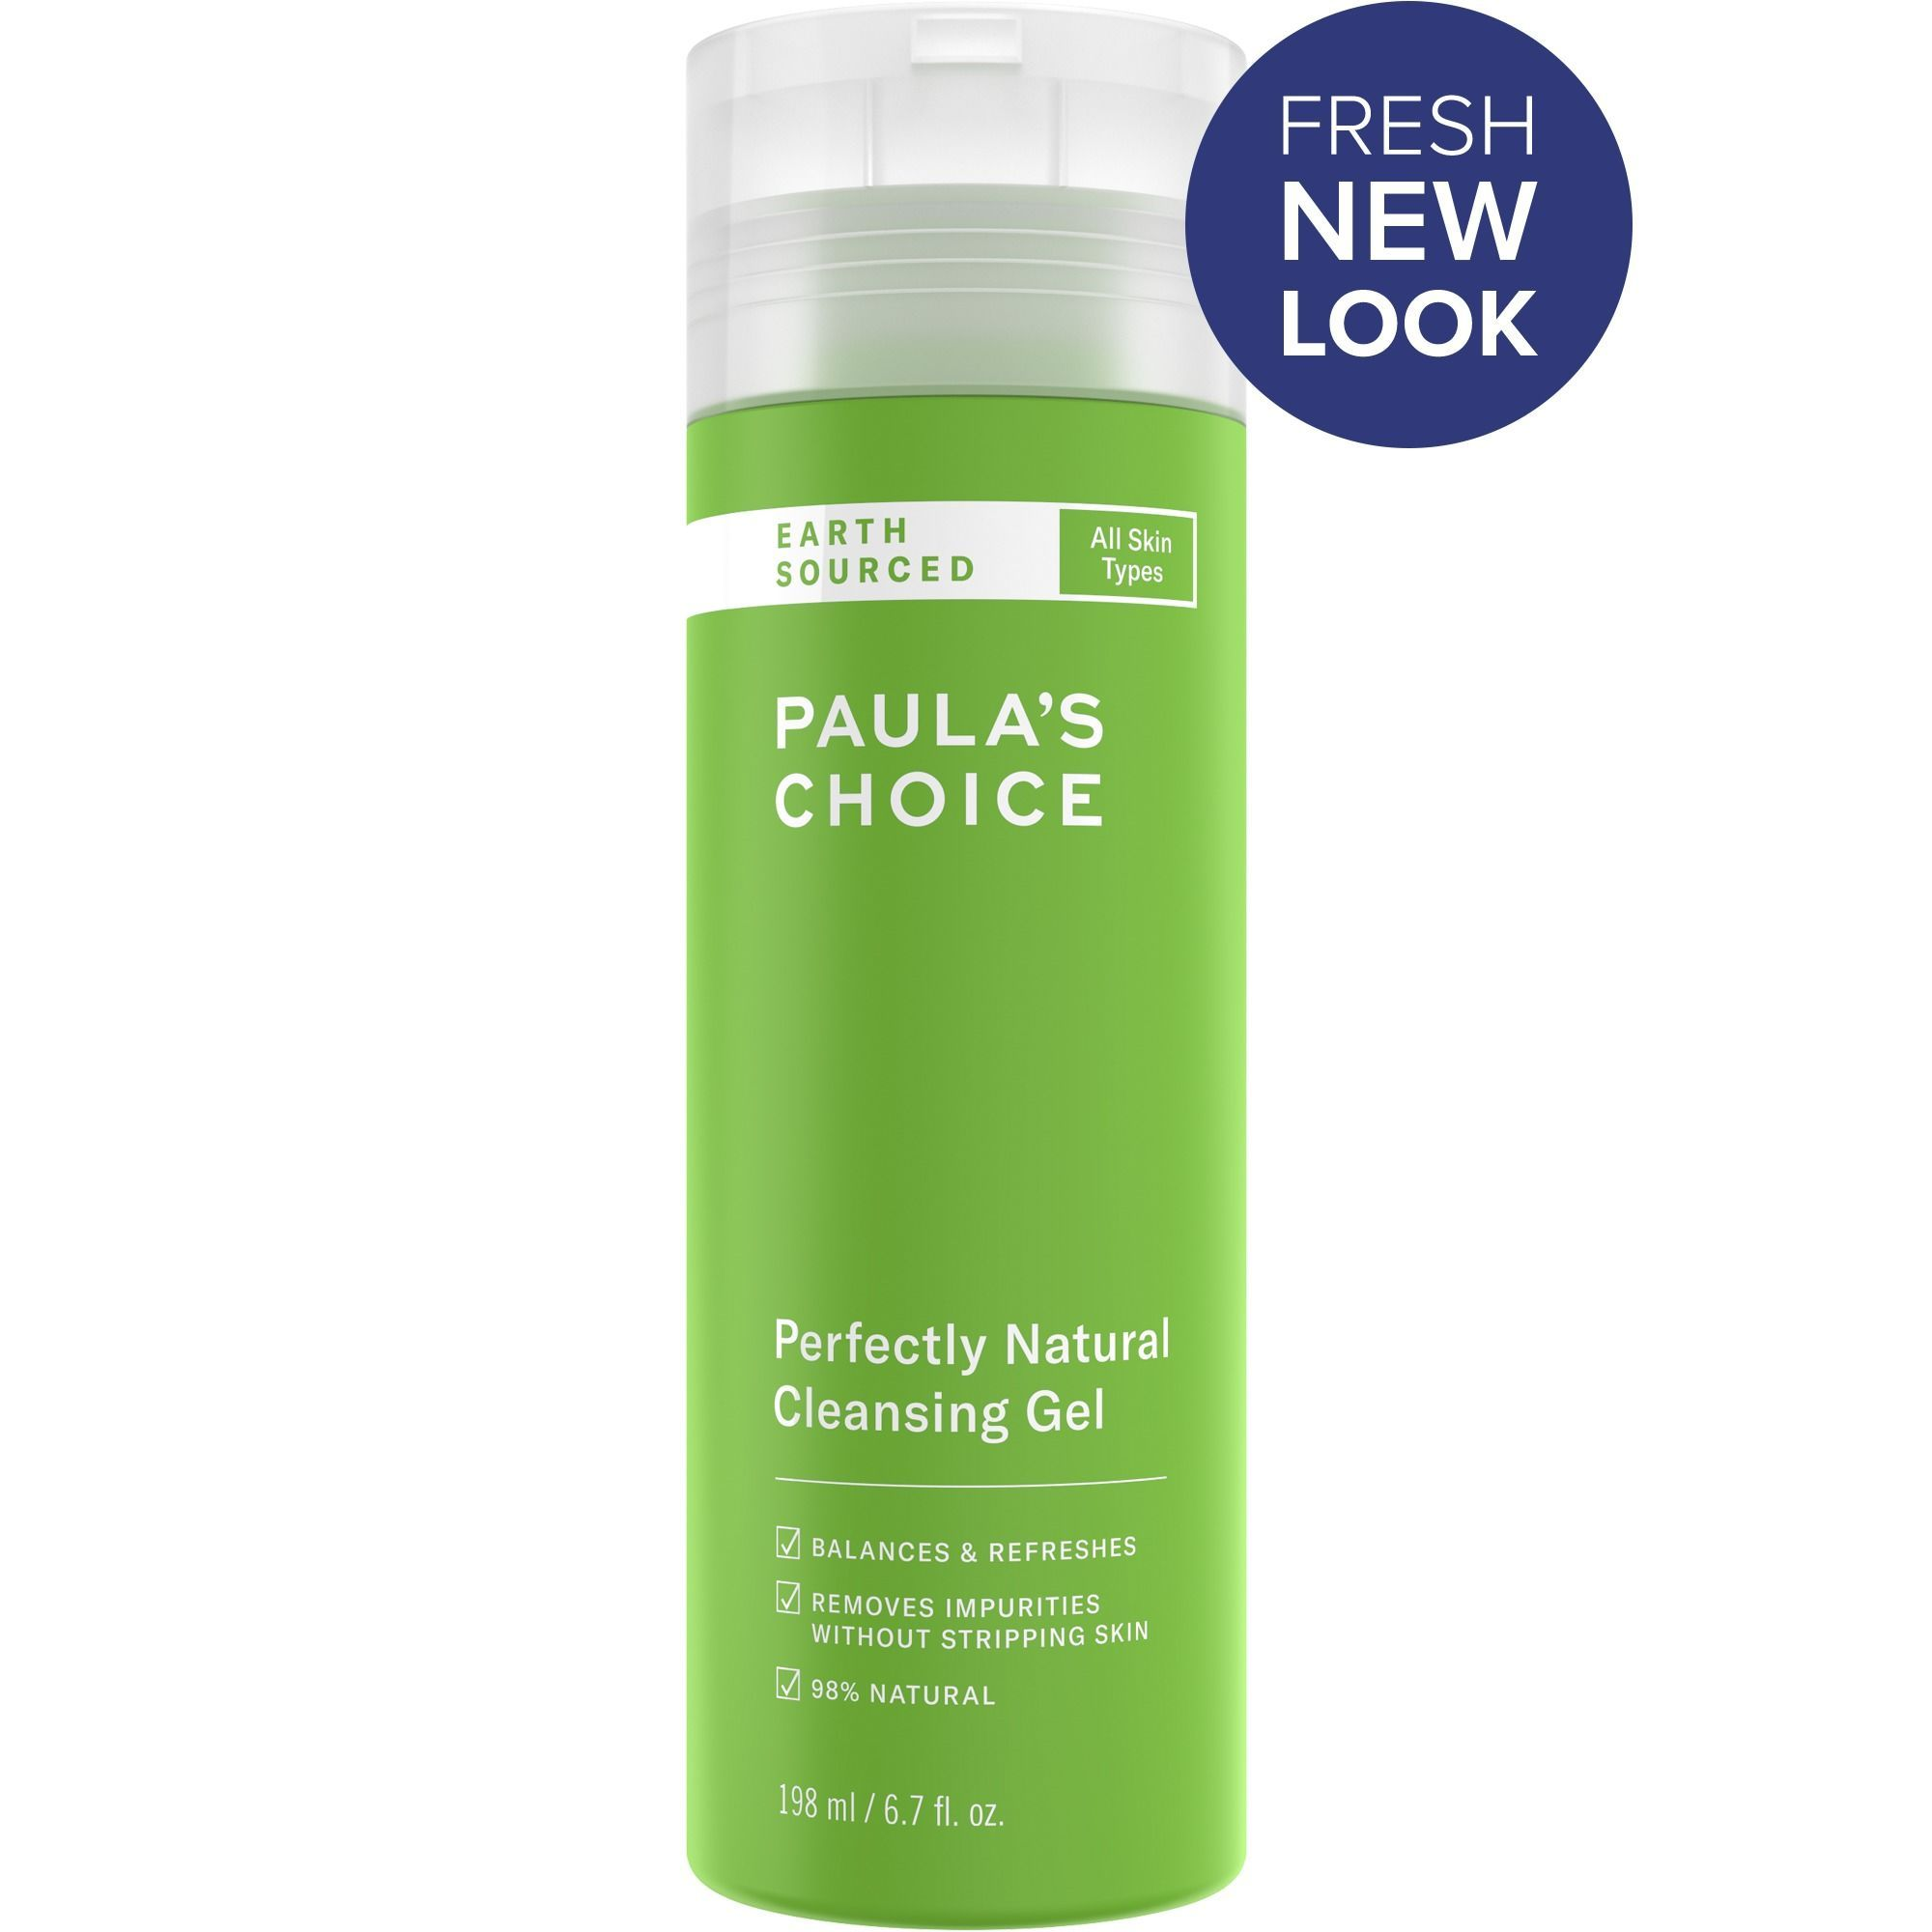 Paula S Choice Perfectly Natural Cleansing Gel Cleansing Gel